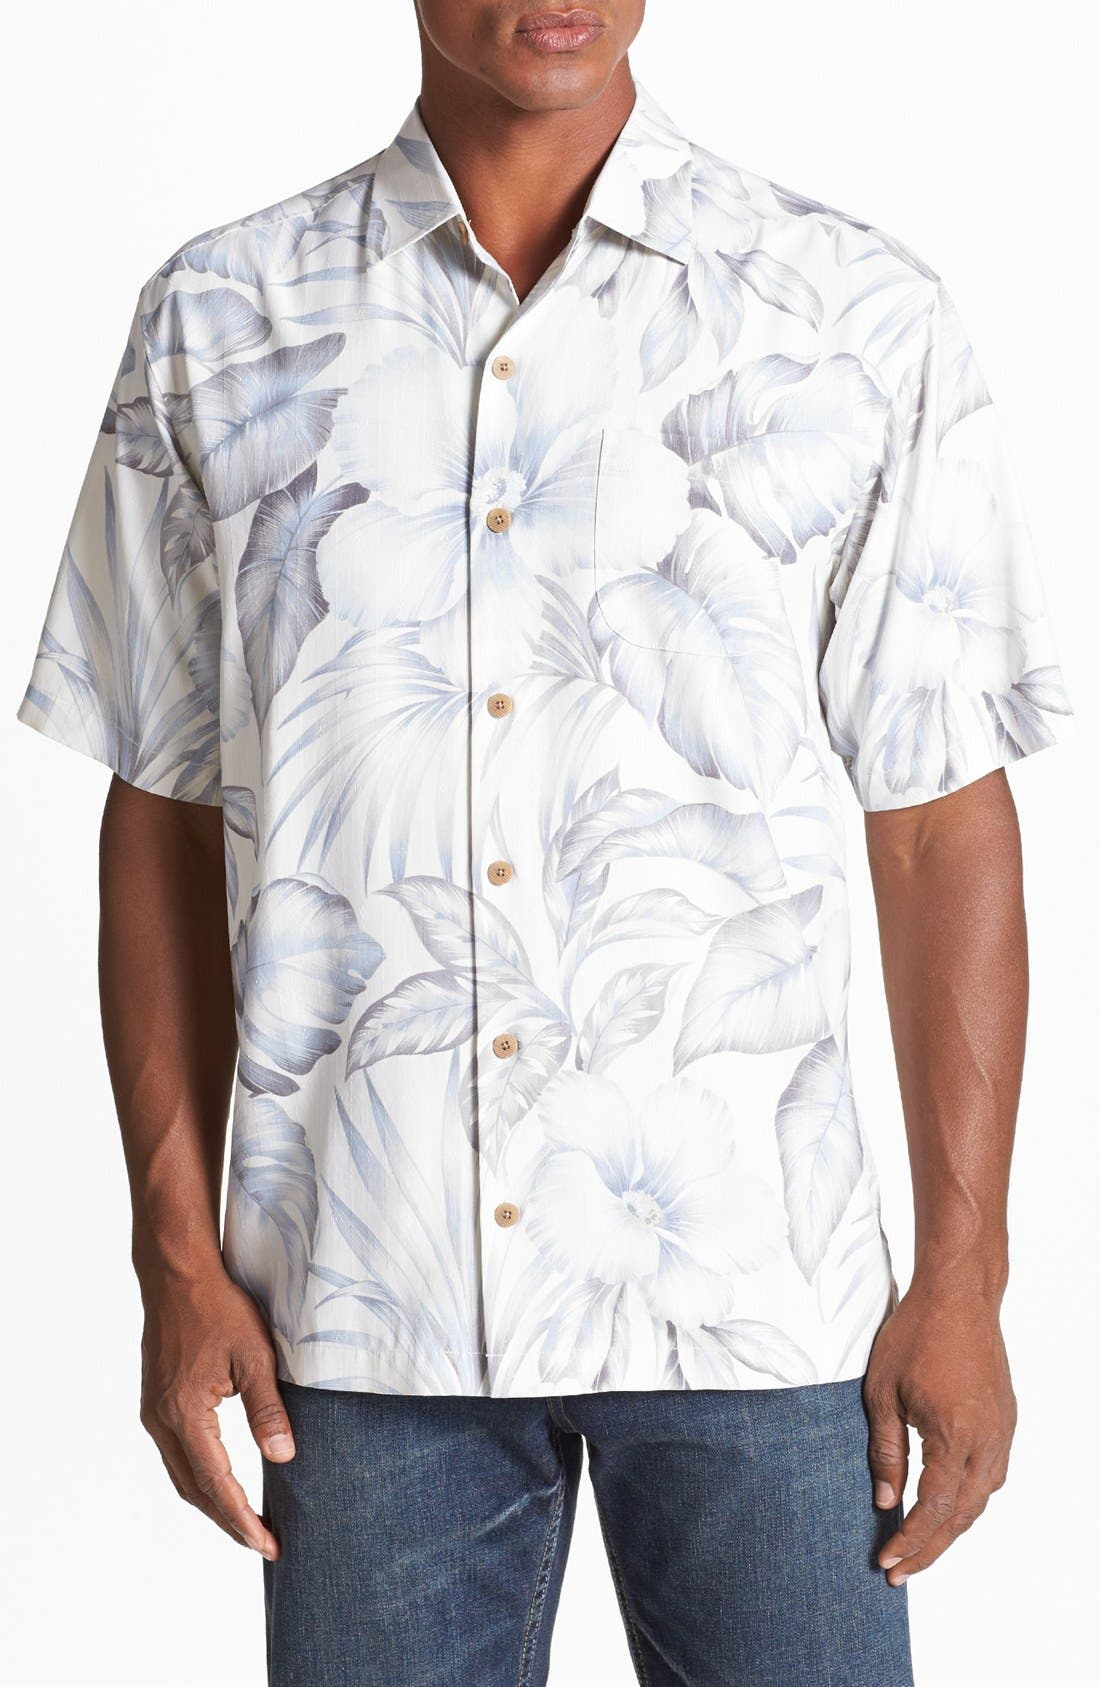 Alternate Image 1 Selected - Tommy Bahama 'Gardens of Casablanca' Silk Campshirt